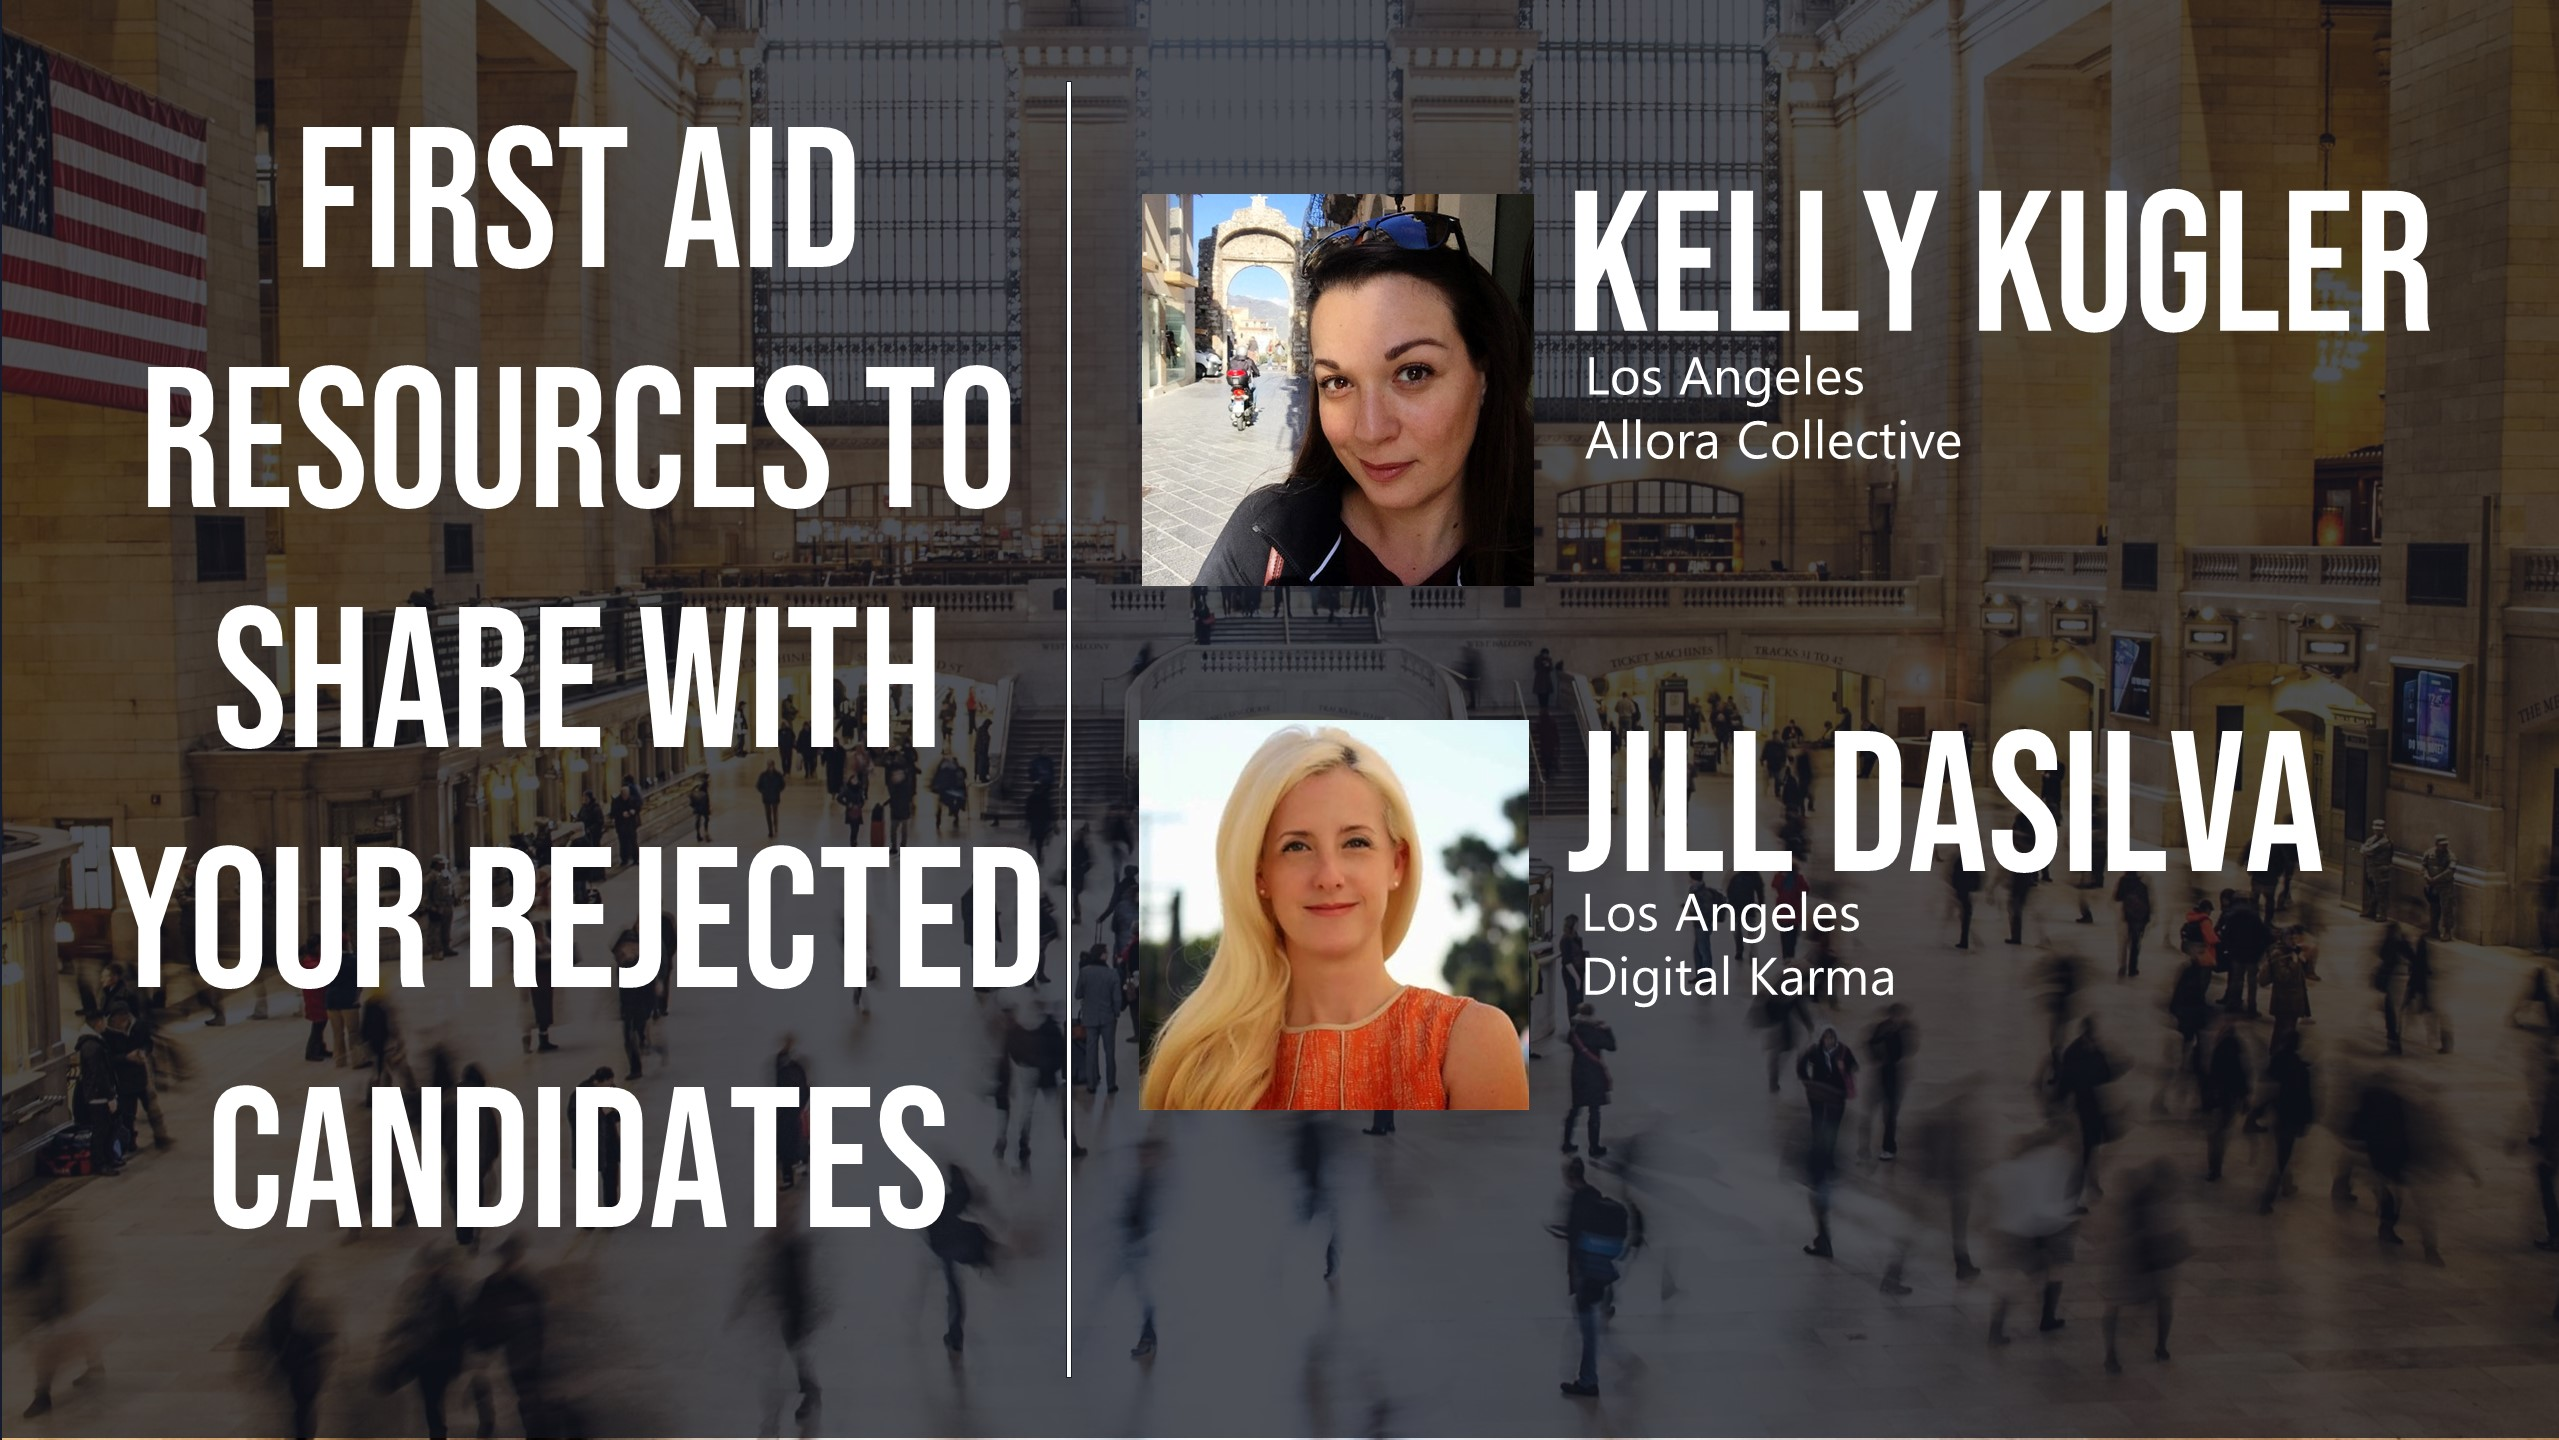 First Aid Resources to Share with Your Rejected Candidates